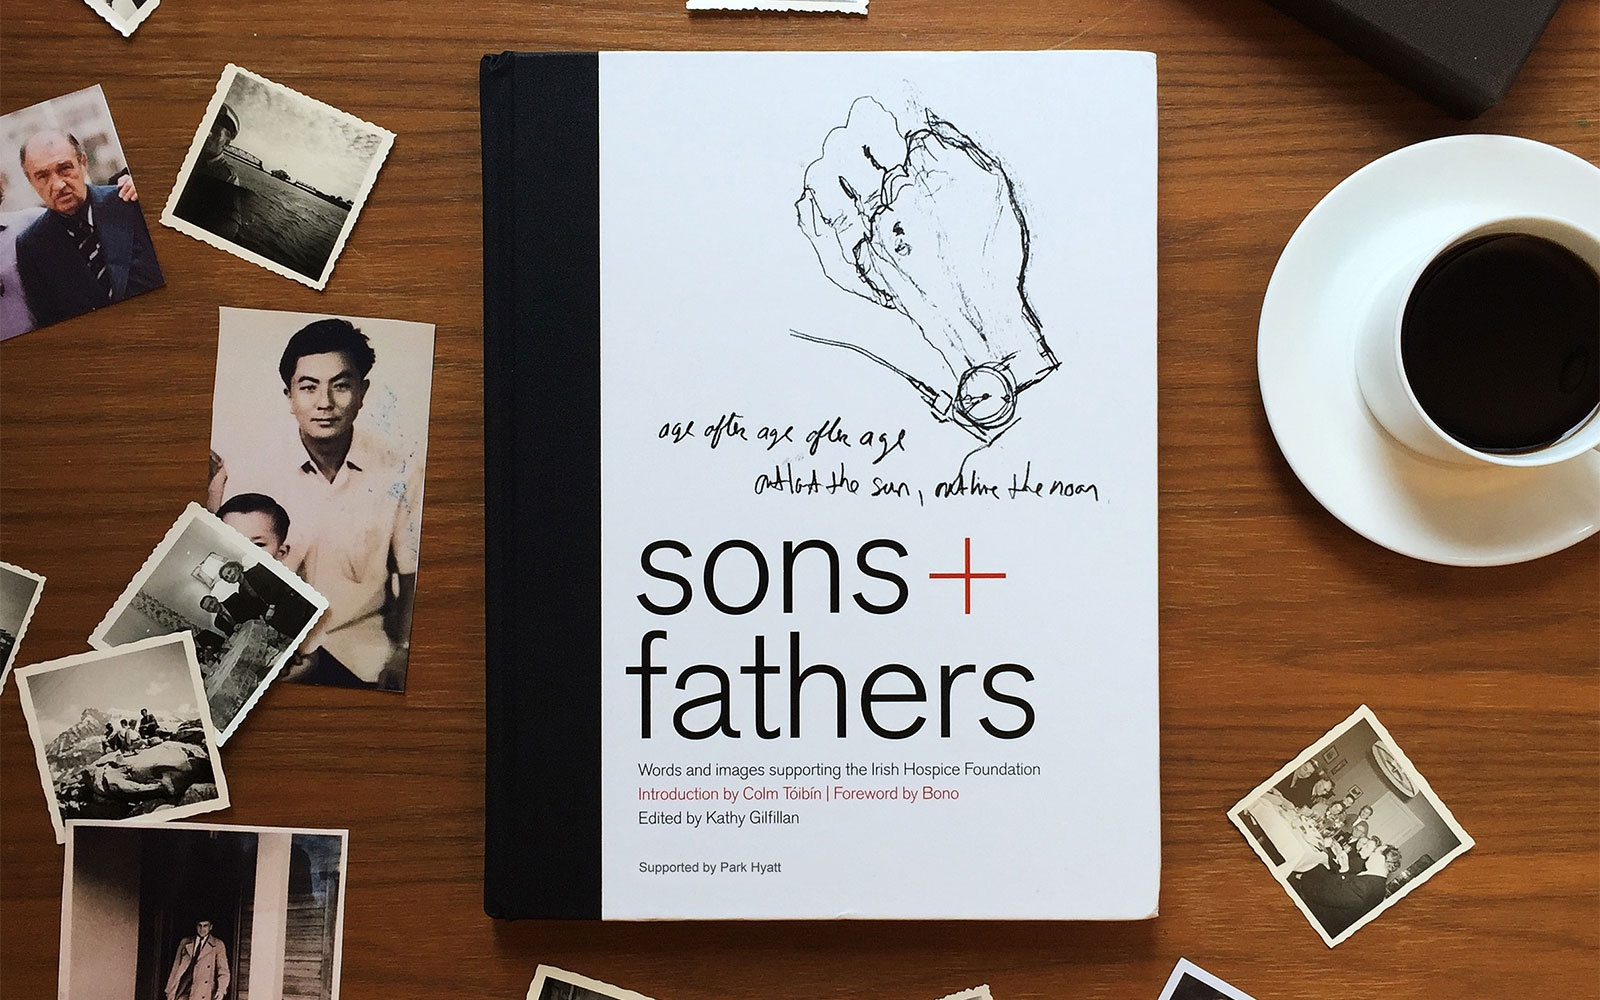 Park Hyatt 's Father's Day book